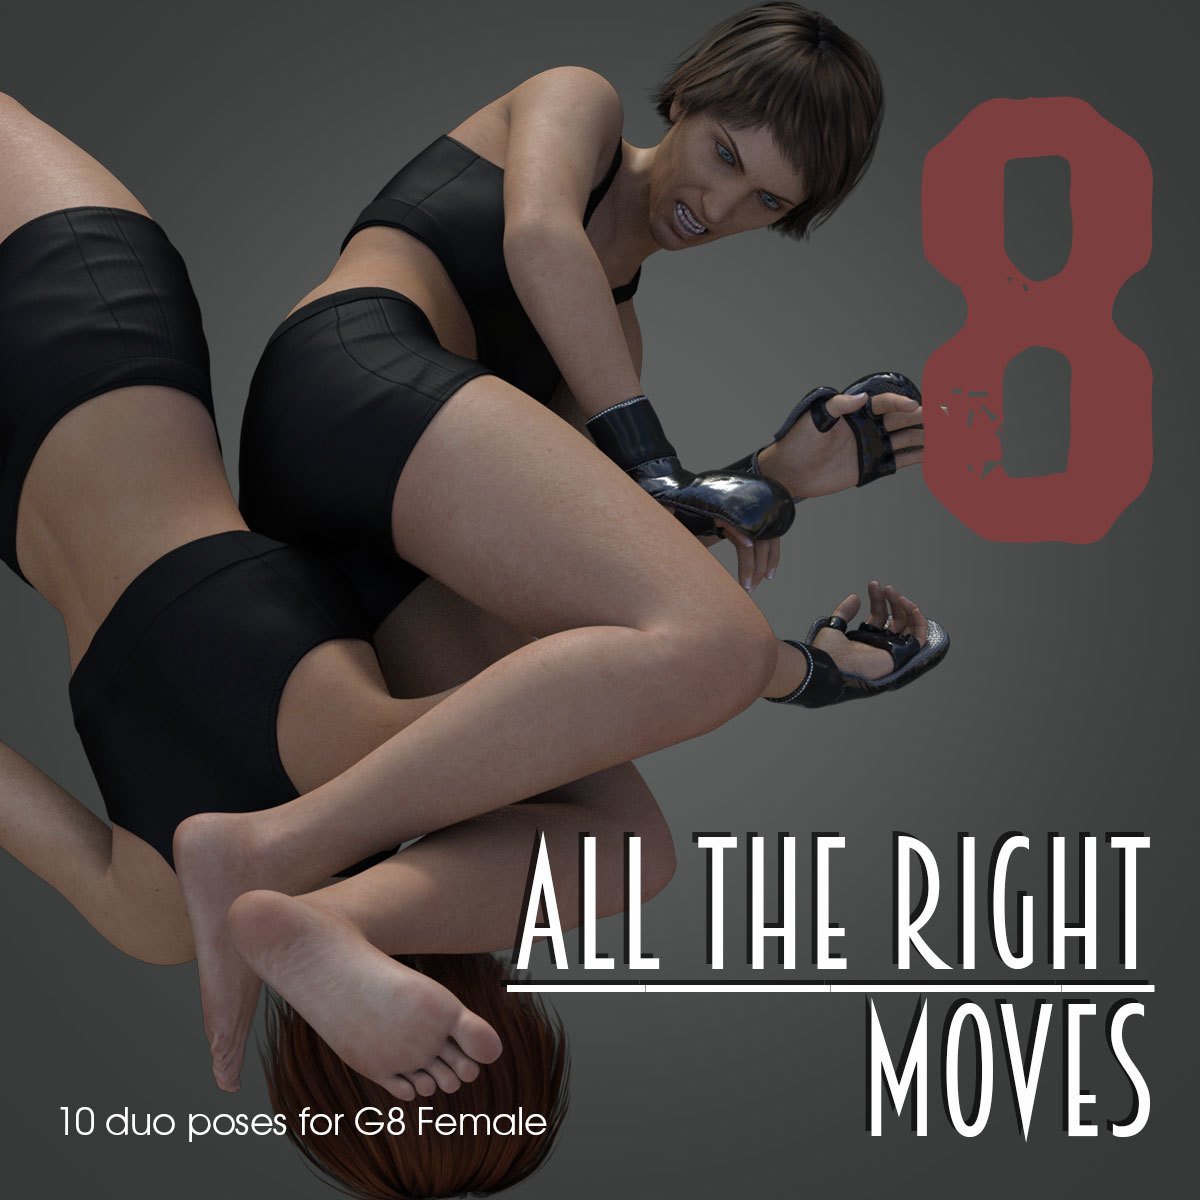 ALL THE RIGHT MOVES vol.8 for Genesis 8 Female